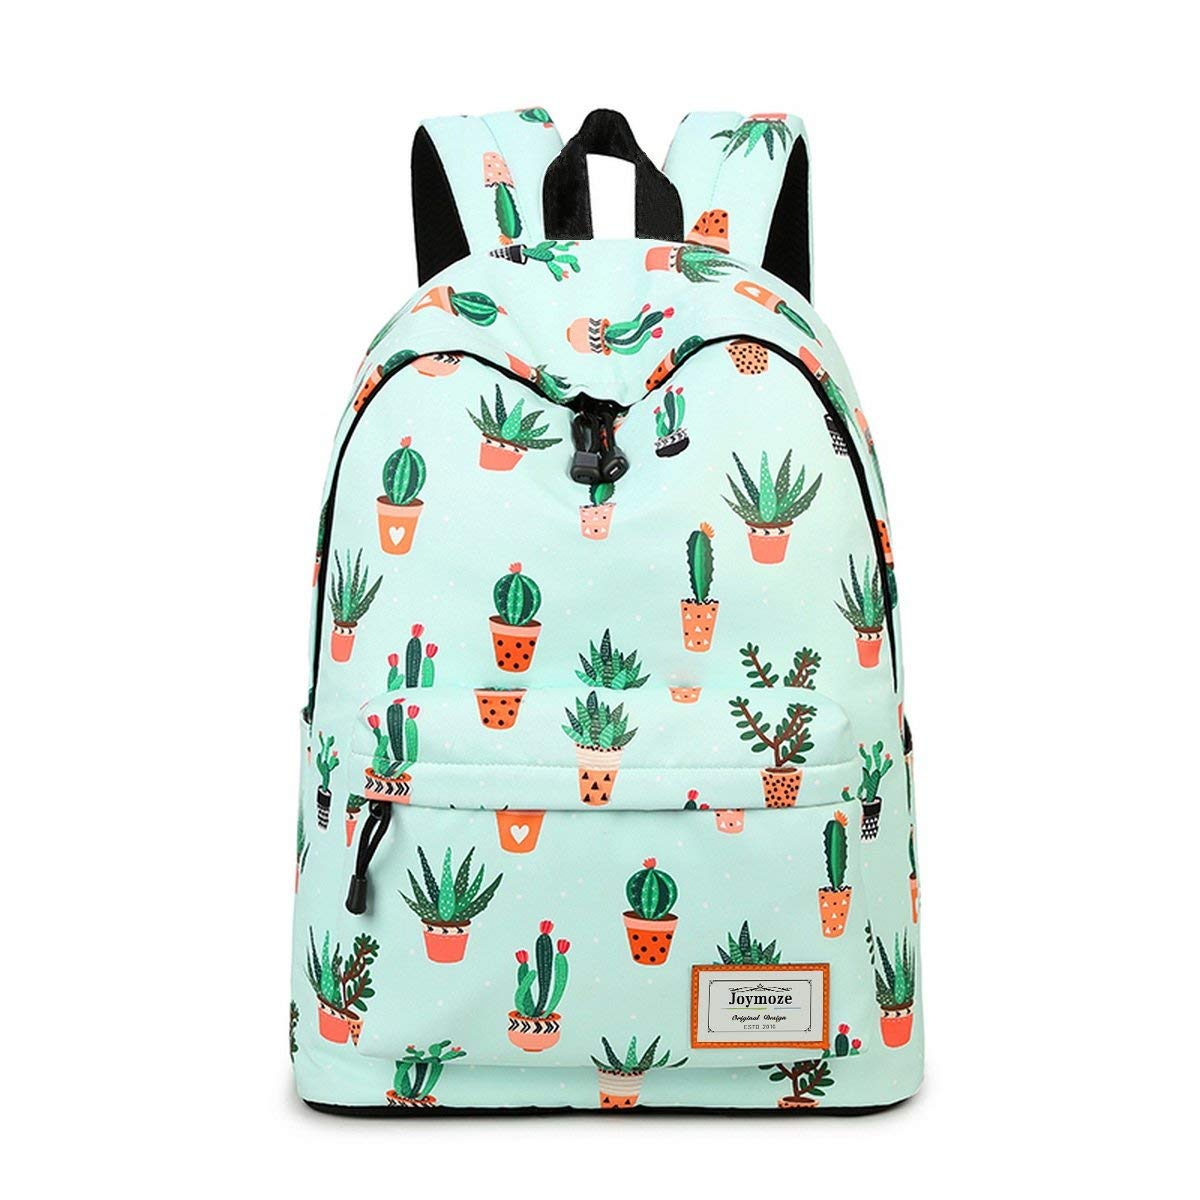 Top 5 Best Back-to-School Backpacks for Teens in 2019 Review ae04824870